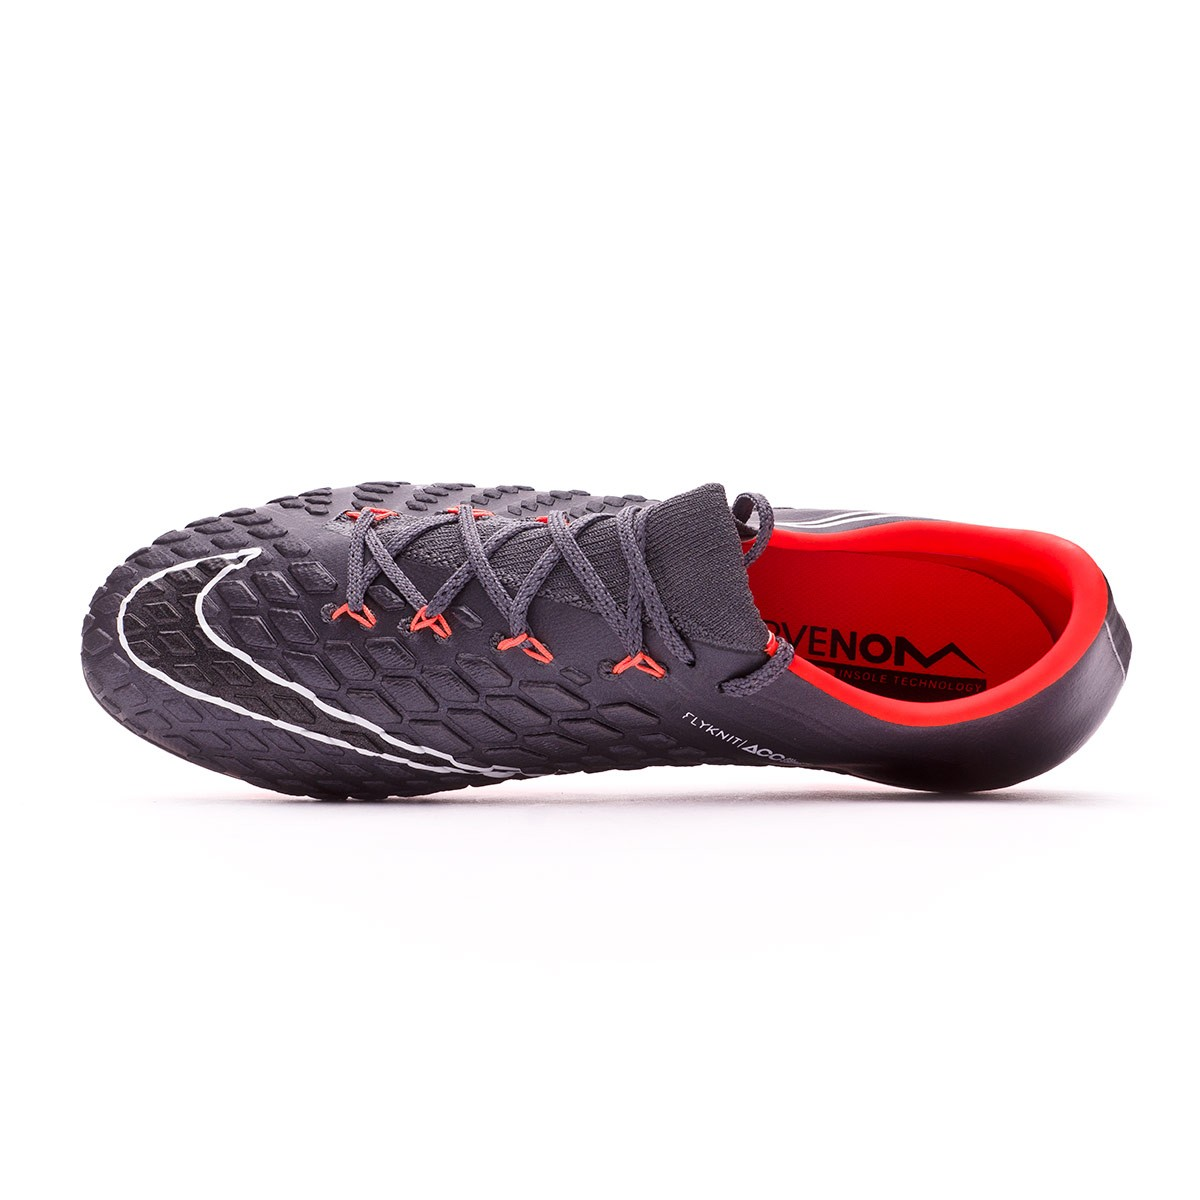 60f72e515733 Football Boots Nike Hypervenom Phantom III Elite AG-Pro Dark grey-Total  orange-White - Football store Fútbol Emotion